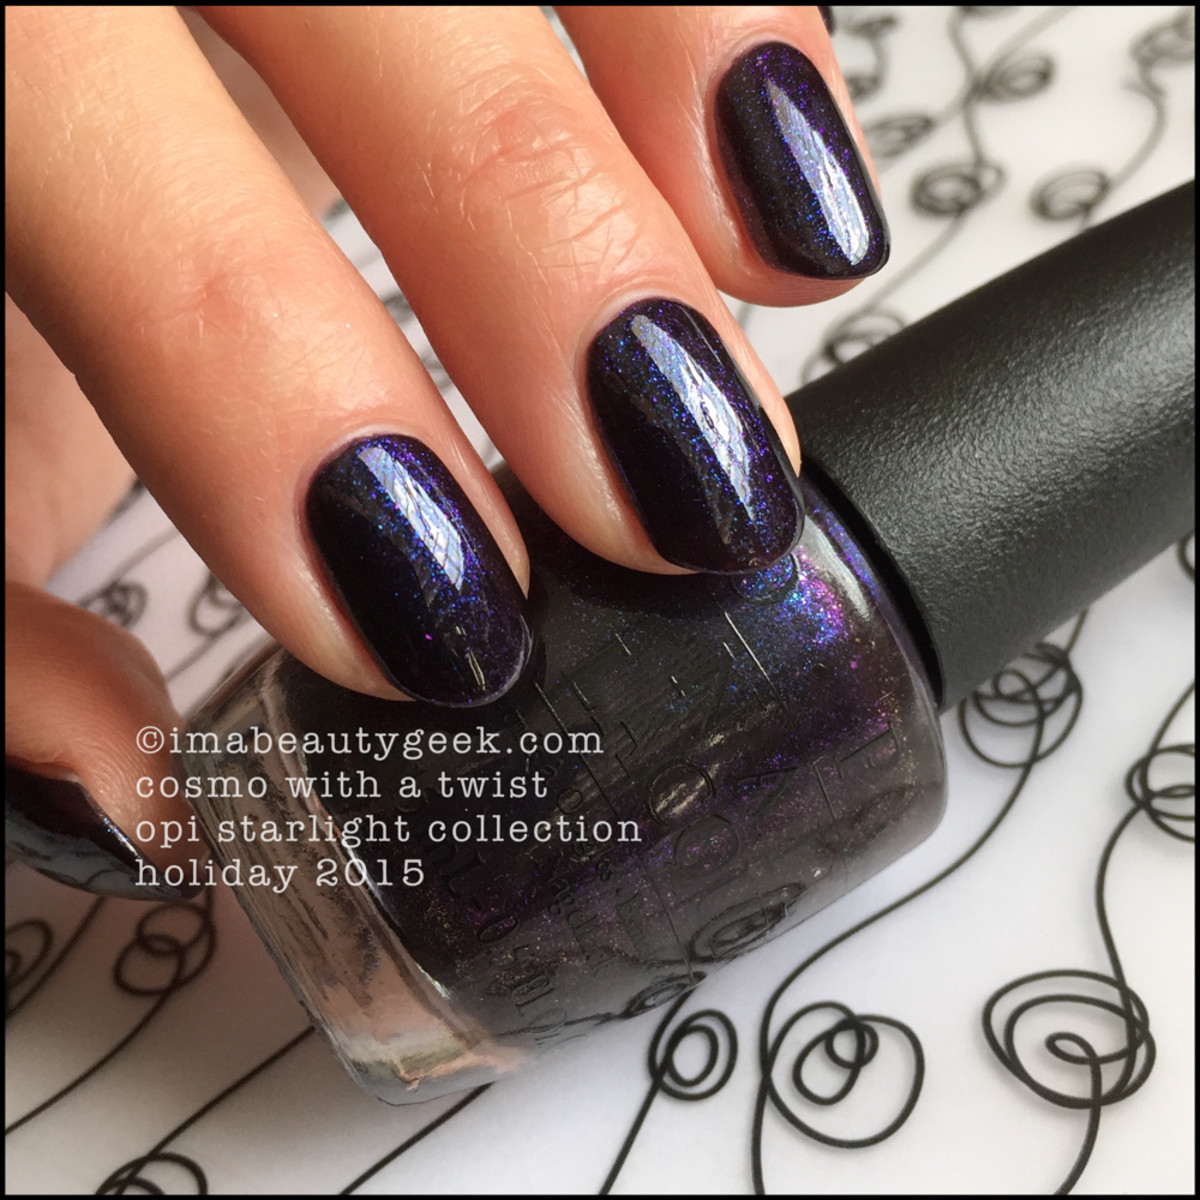 OPI Cosmo With a Twist Swatches_OPI Starlight Collection Holiday 2015